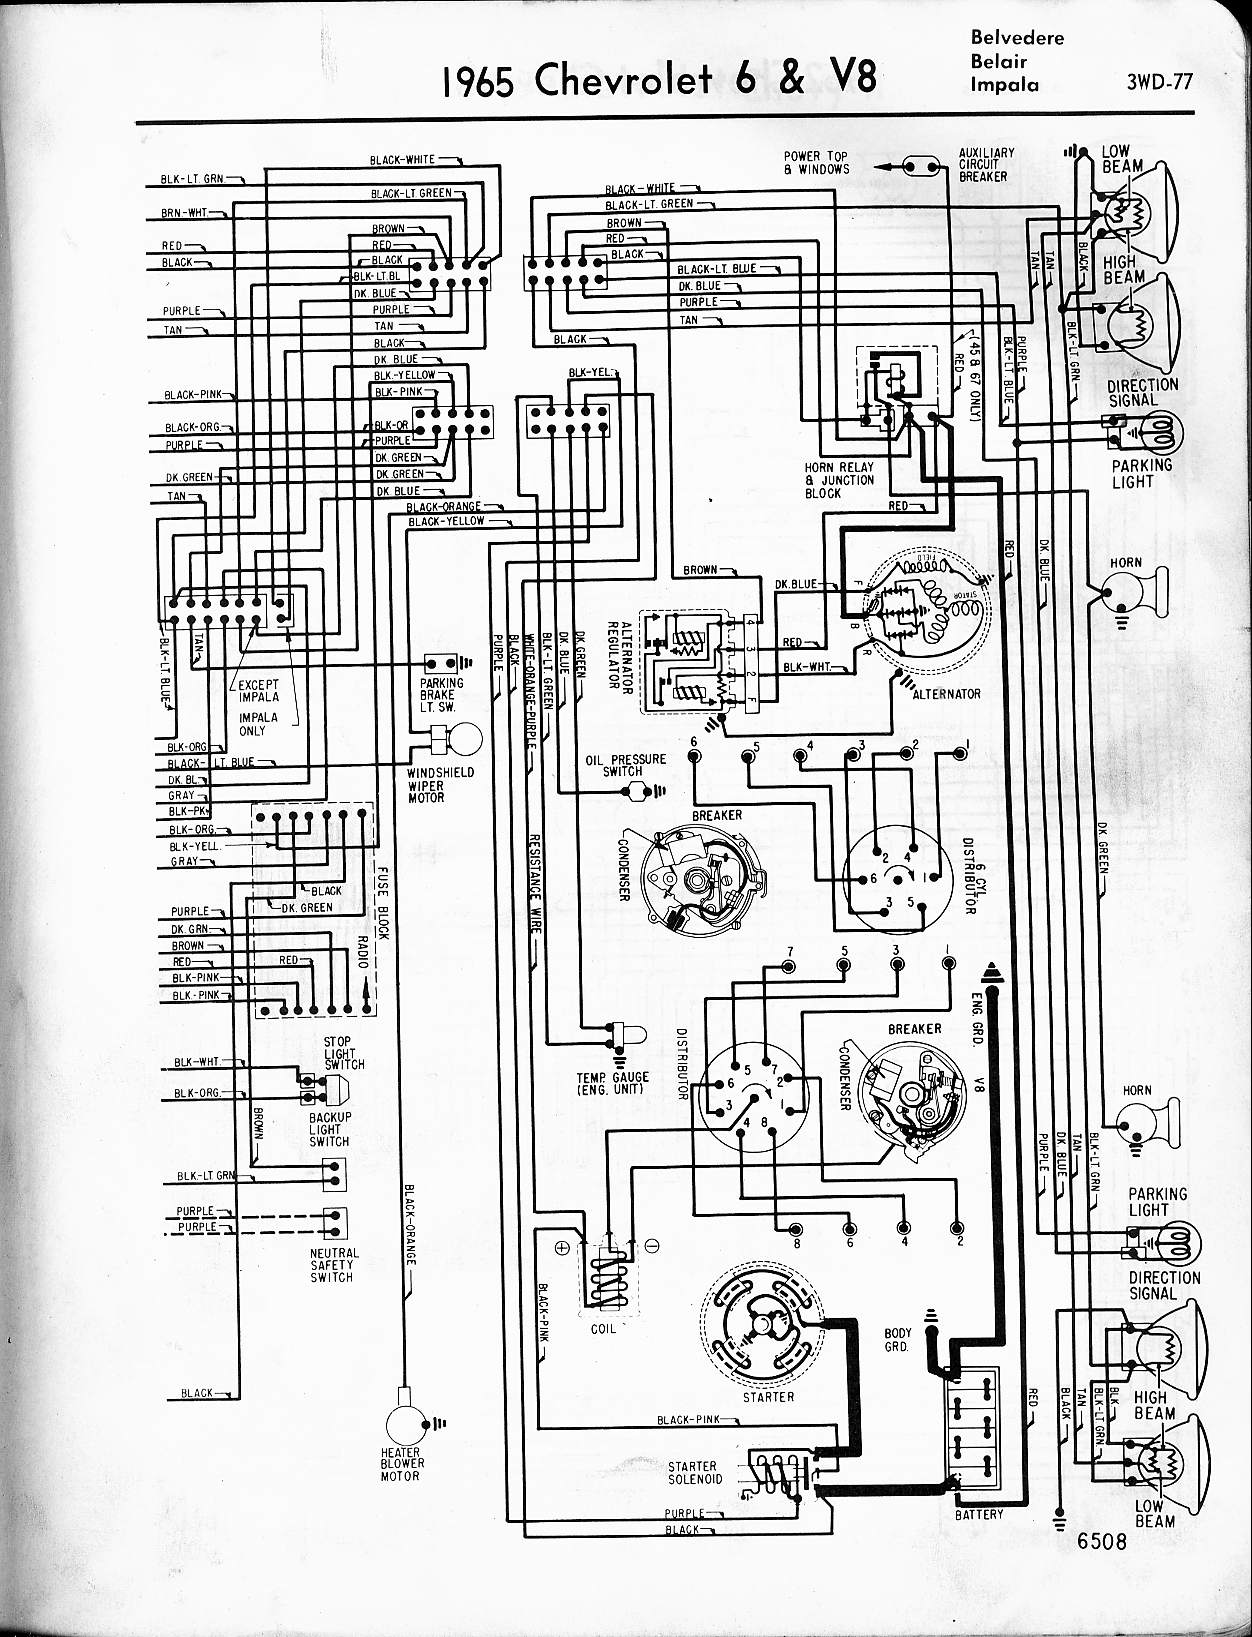 MWireChev65_3WD 077 1966 impala wiring diagram 1966 impala hei distributor wiring chevrolet 1966 impala wiring diagram at crackthecode.co